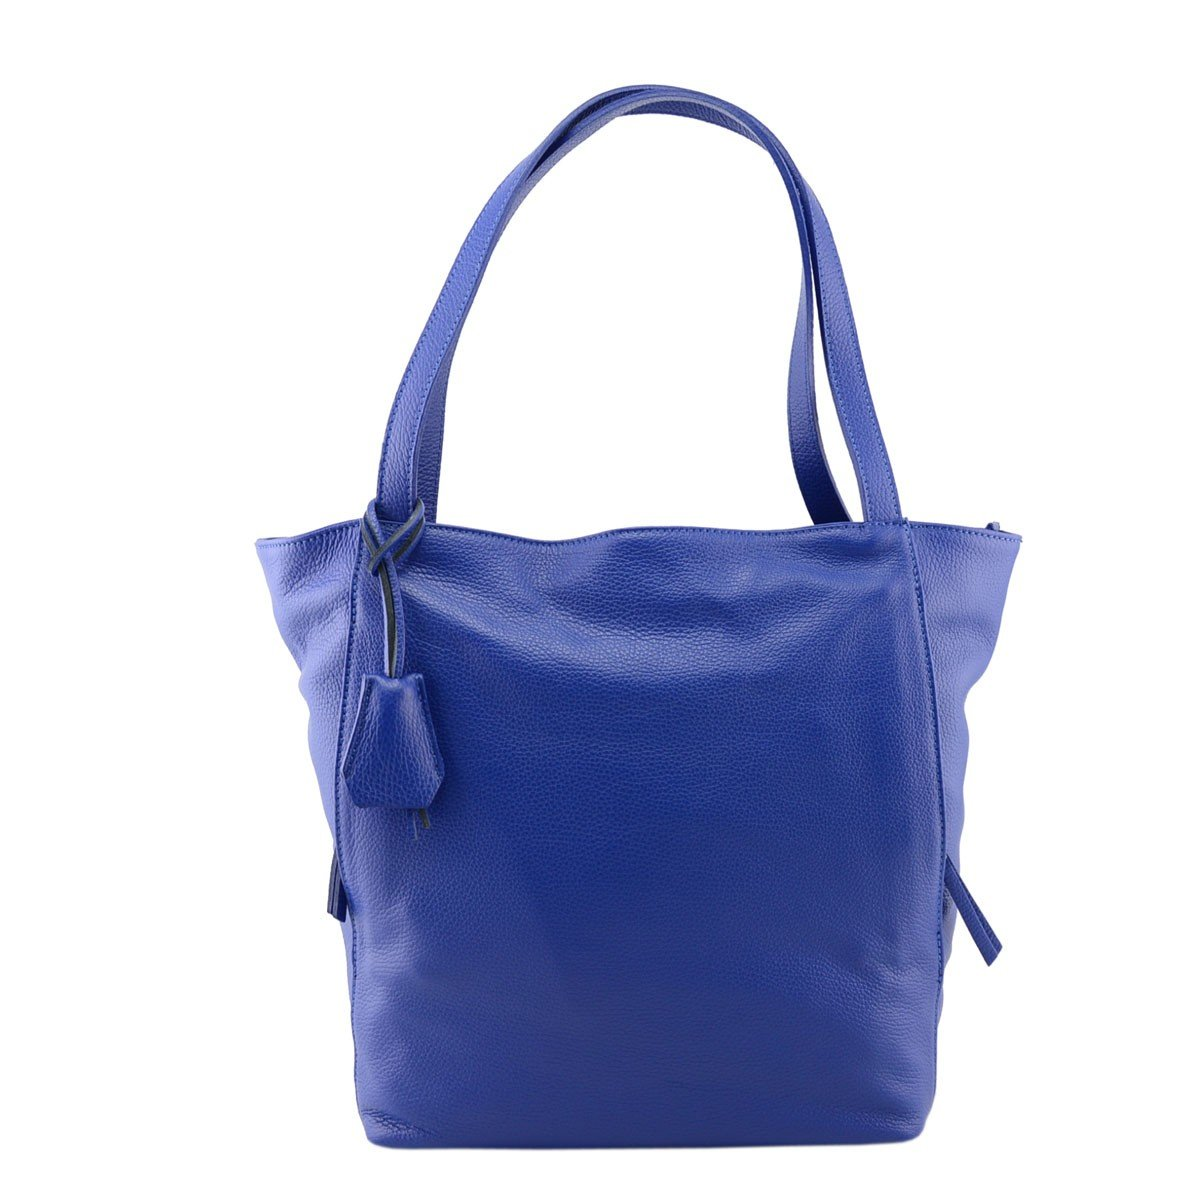 Dream Leather Bags Made in Italy Genuine Leather レディース 18-15 US サイズ: 1 カラー: ブルー B074M9L1J6